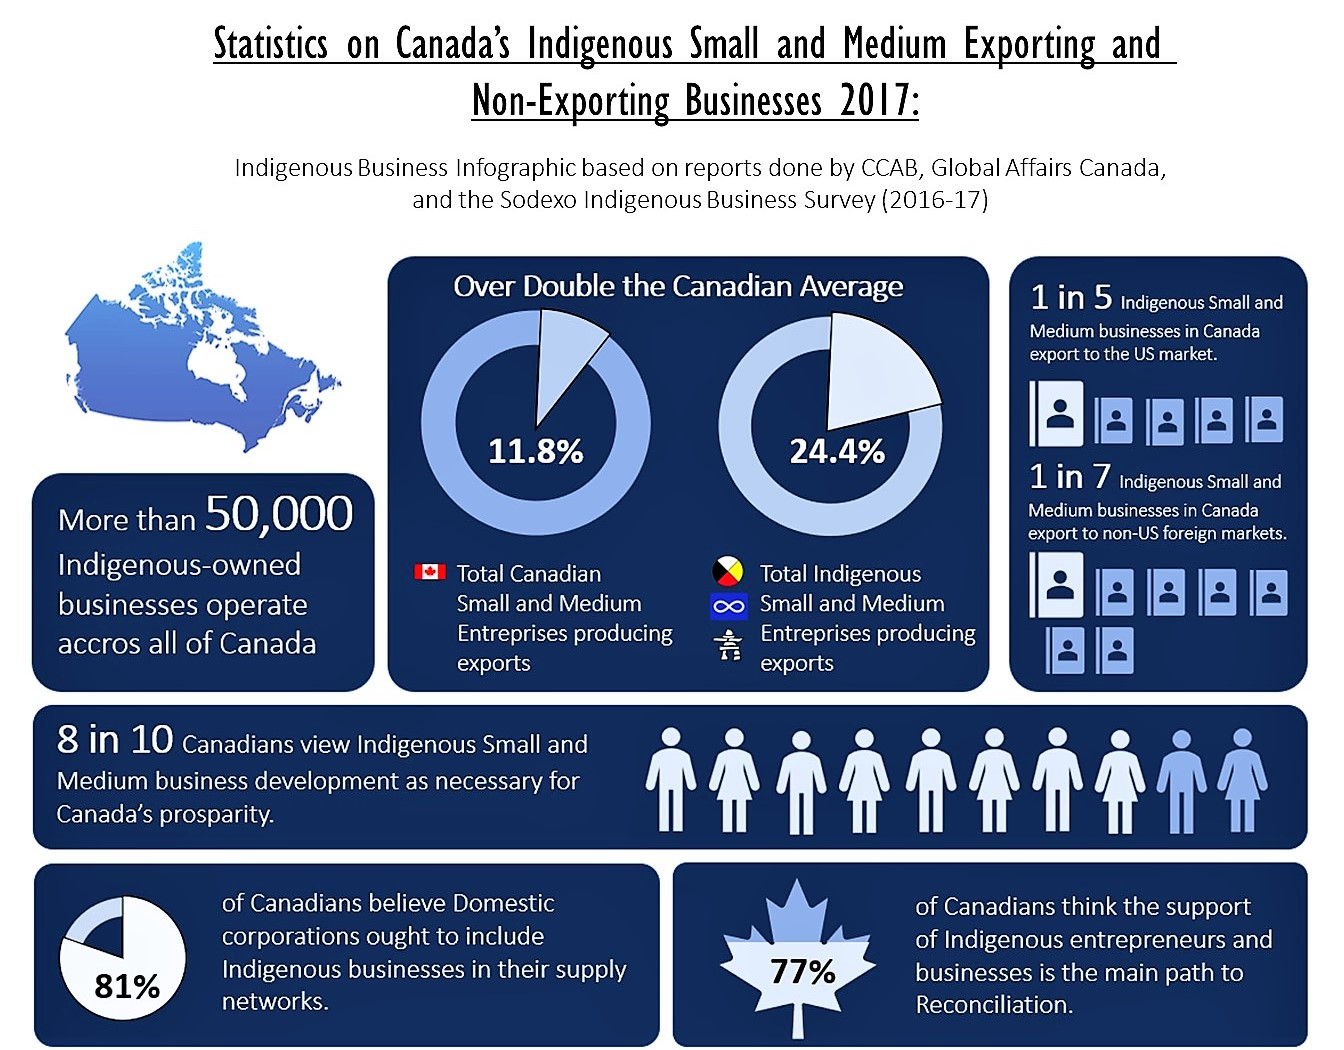 Statistics on Canada's Indigenous Small and Medium Exporting and Non-Exporting Businesses 2017: Indigenous Business Infographic based on reports done by CCAB, Global Affairs Canada, and the Sodexo Indigenous Business Survey (2016-17)